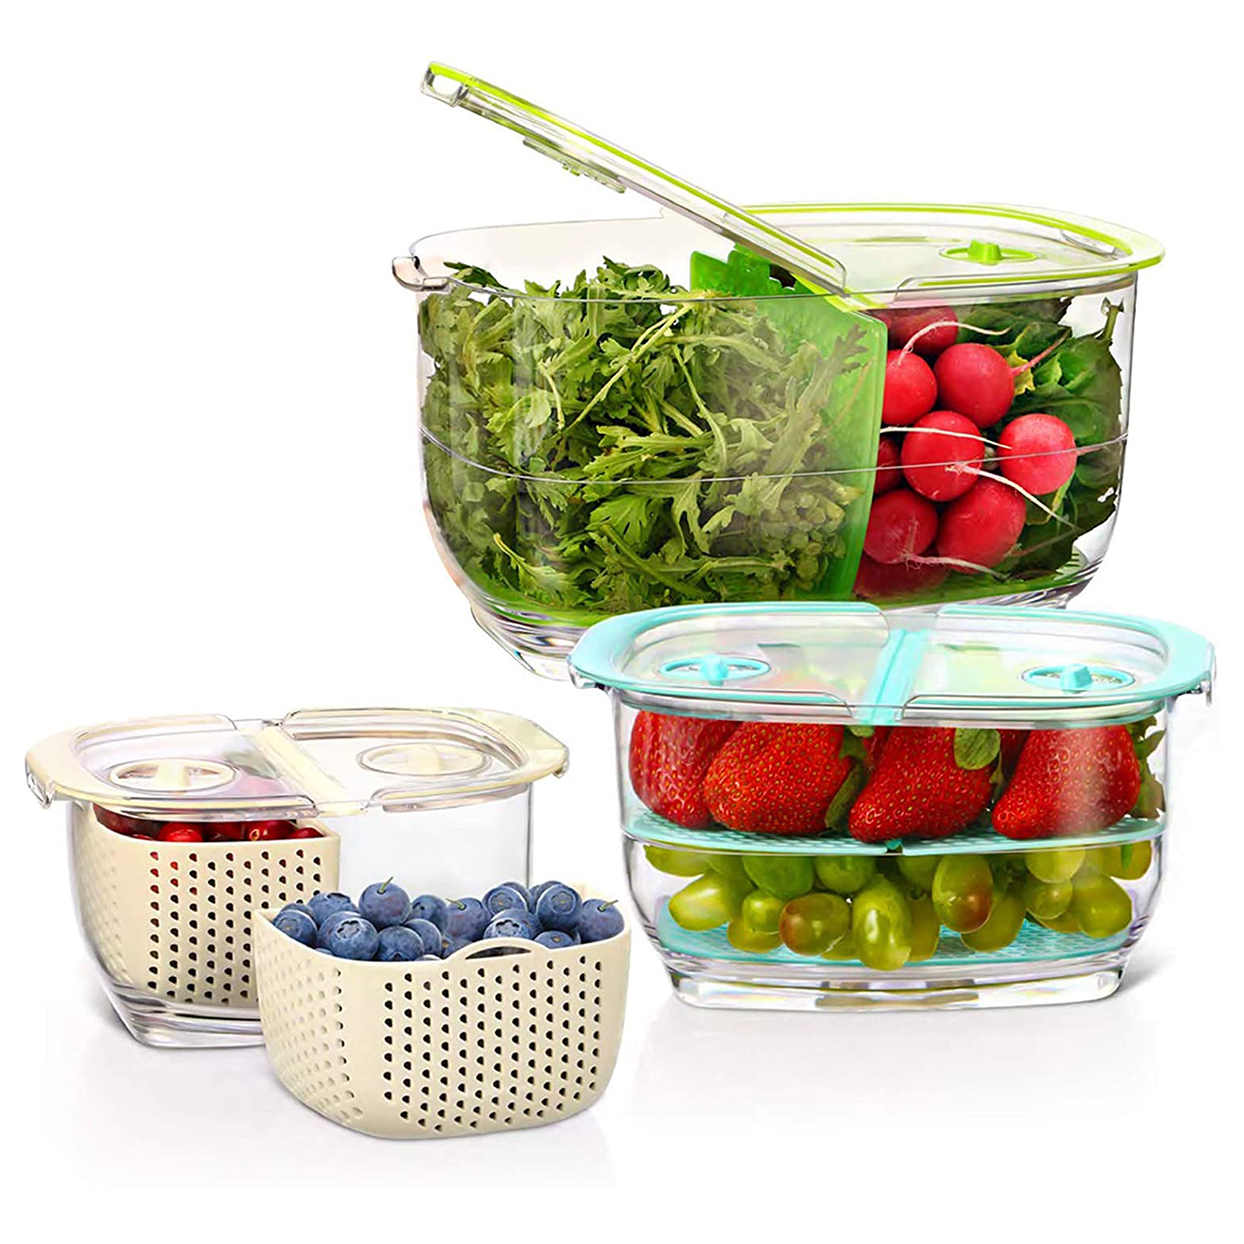 These Best-Selling Containers Keep Produce Fresh for Weeks